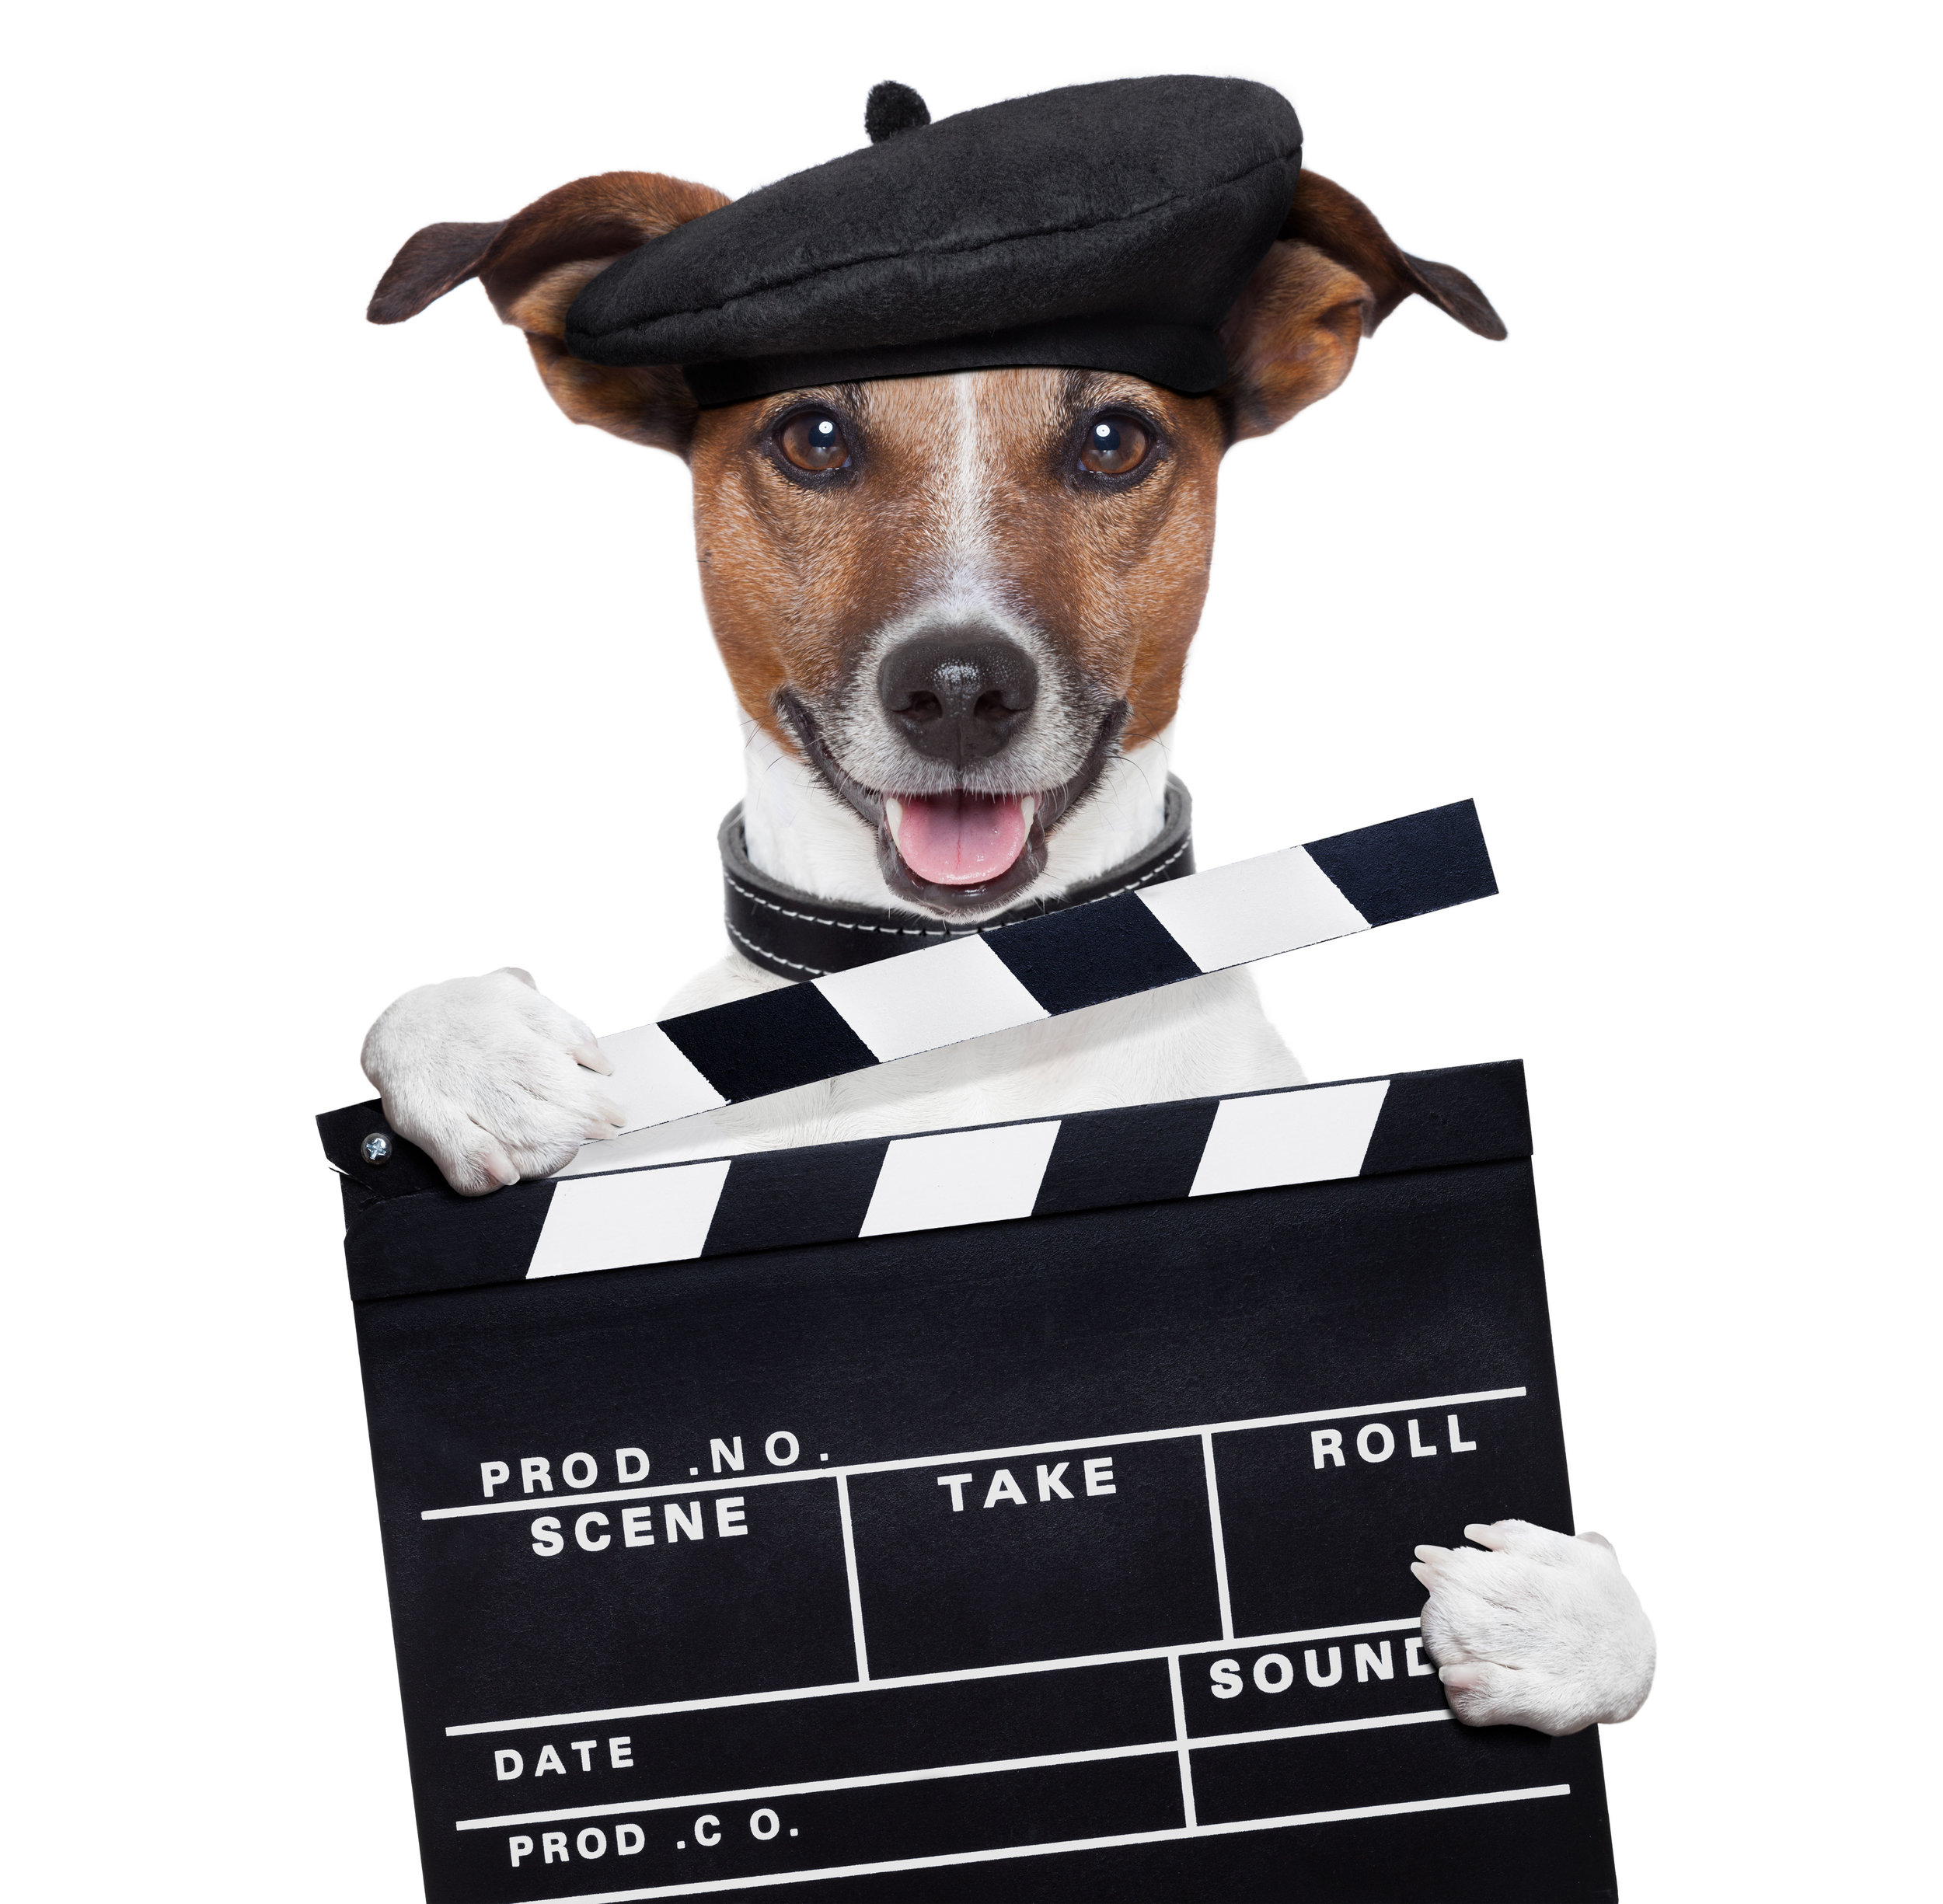 Cute dog wearing a beret and holding a clapboard.